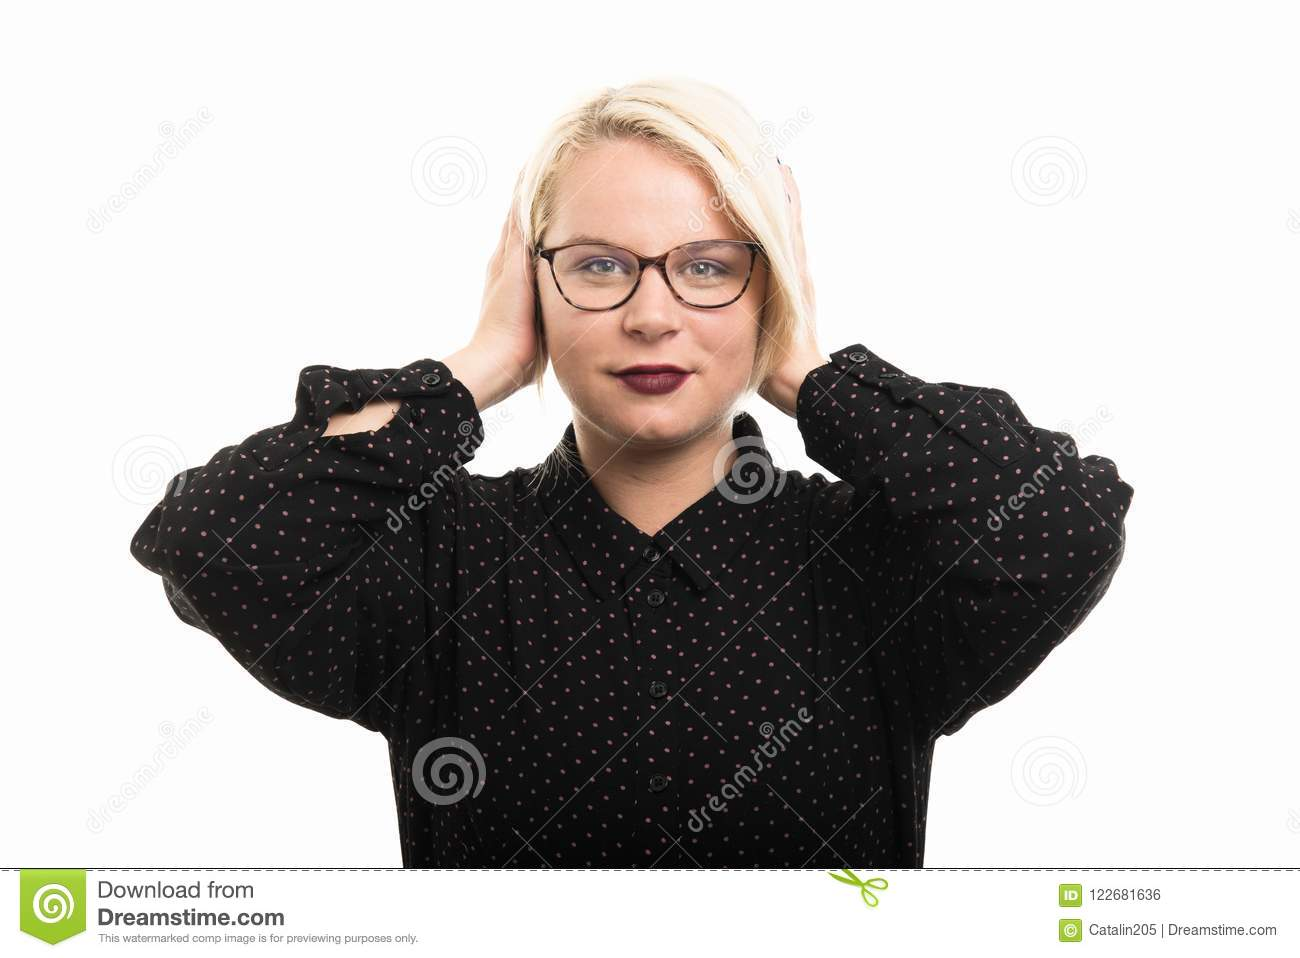 Blonde female teacher wearing glasses covering ears like deaf ge